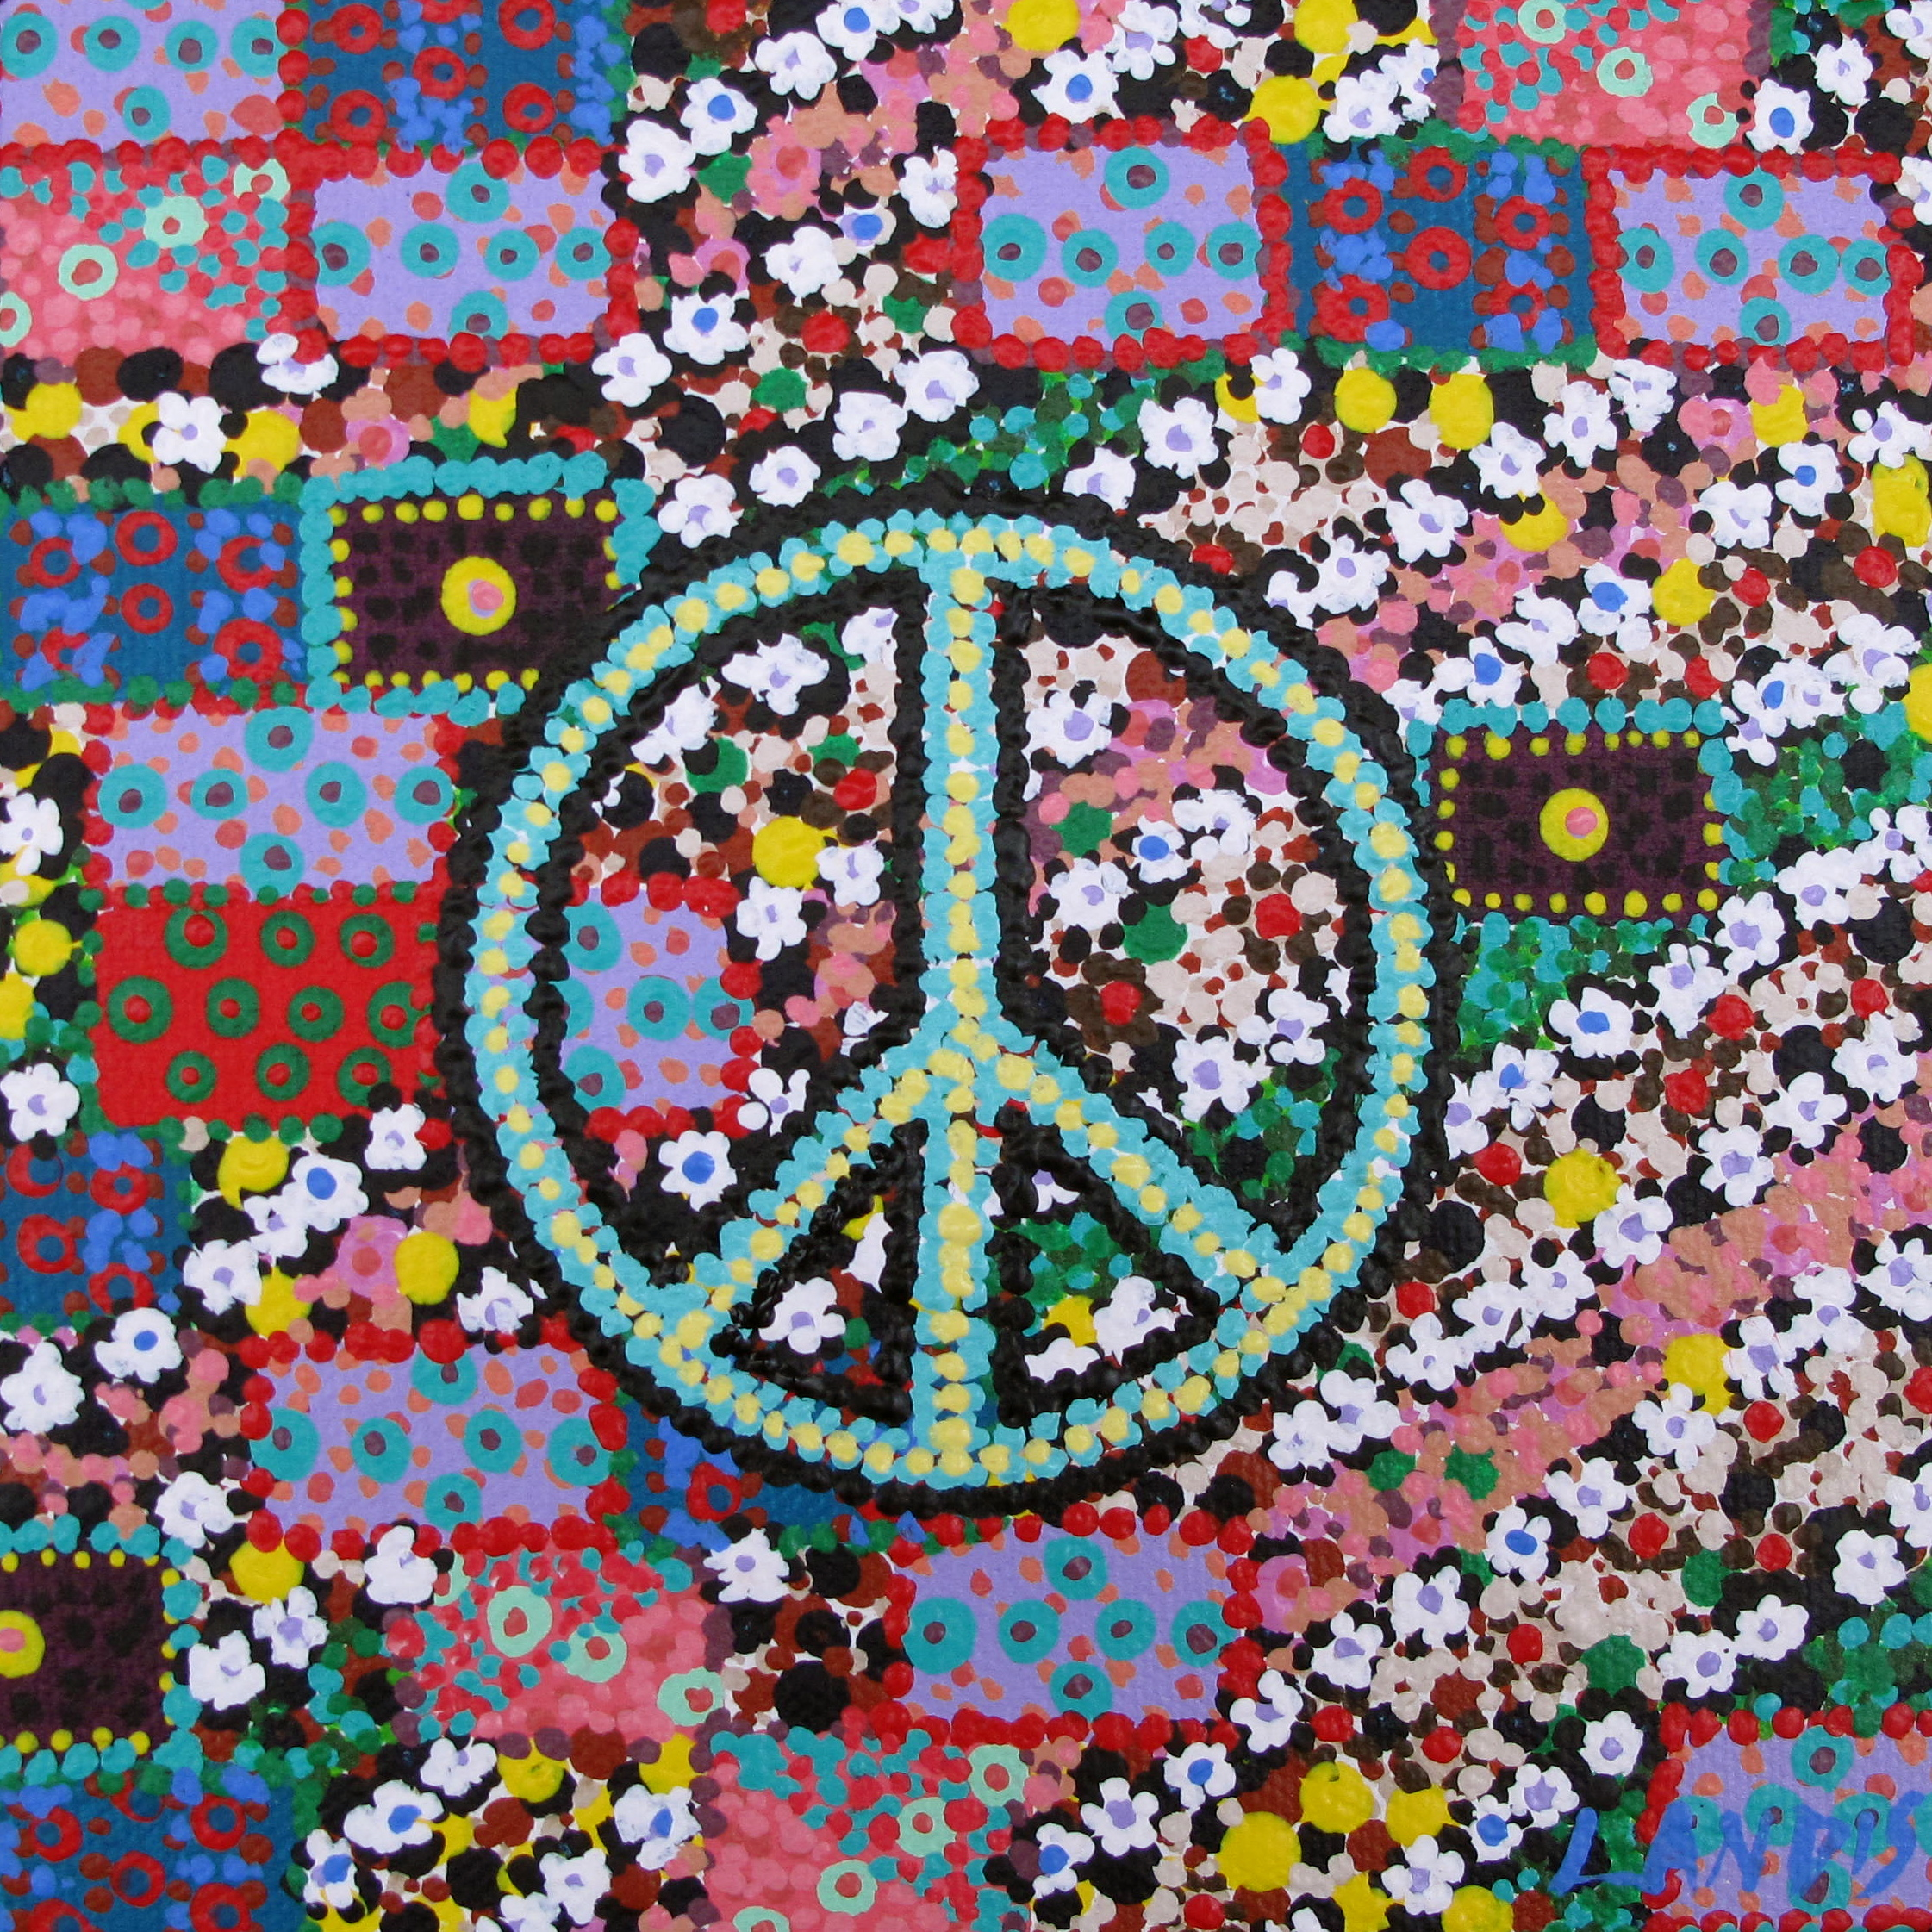 flower power tranquillitas animi on pinterest flower power hippie style and hippies. Black Bedroom Furniture Sets. Home Design Ideas